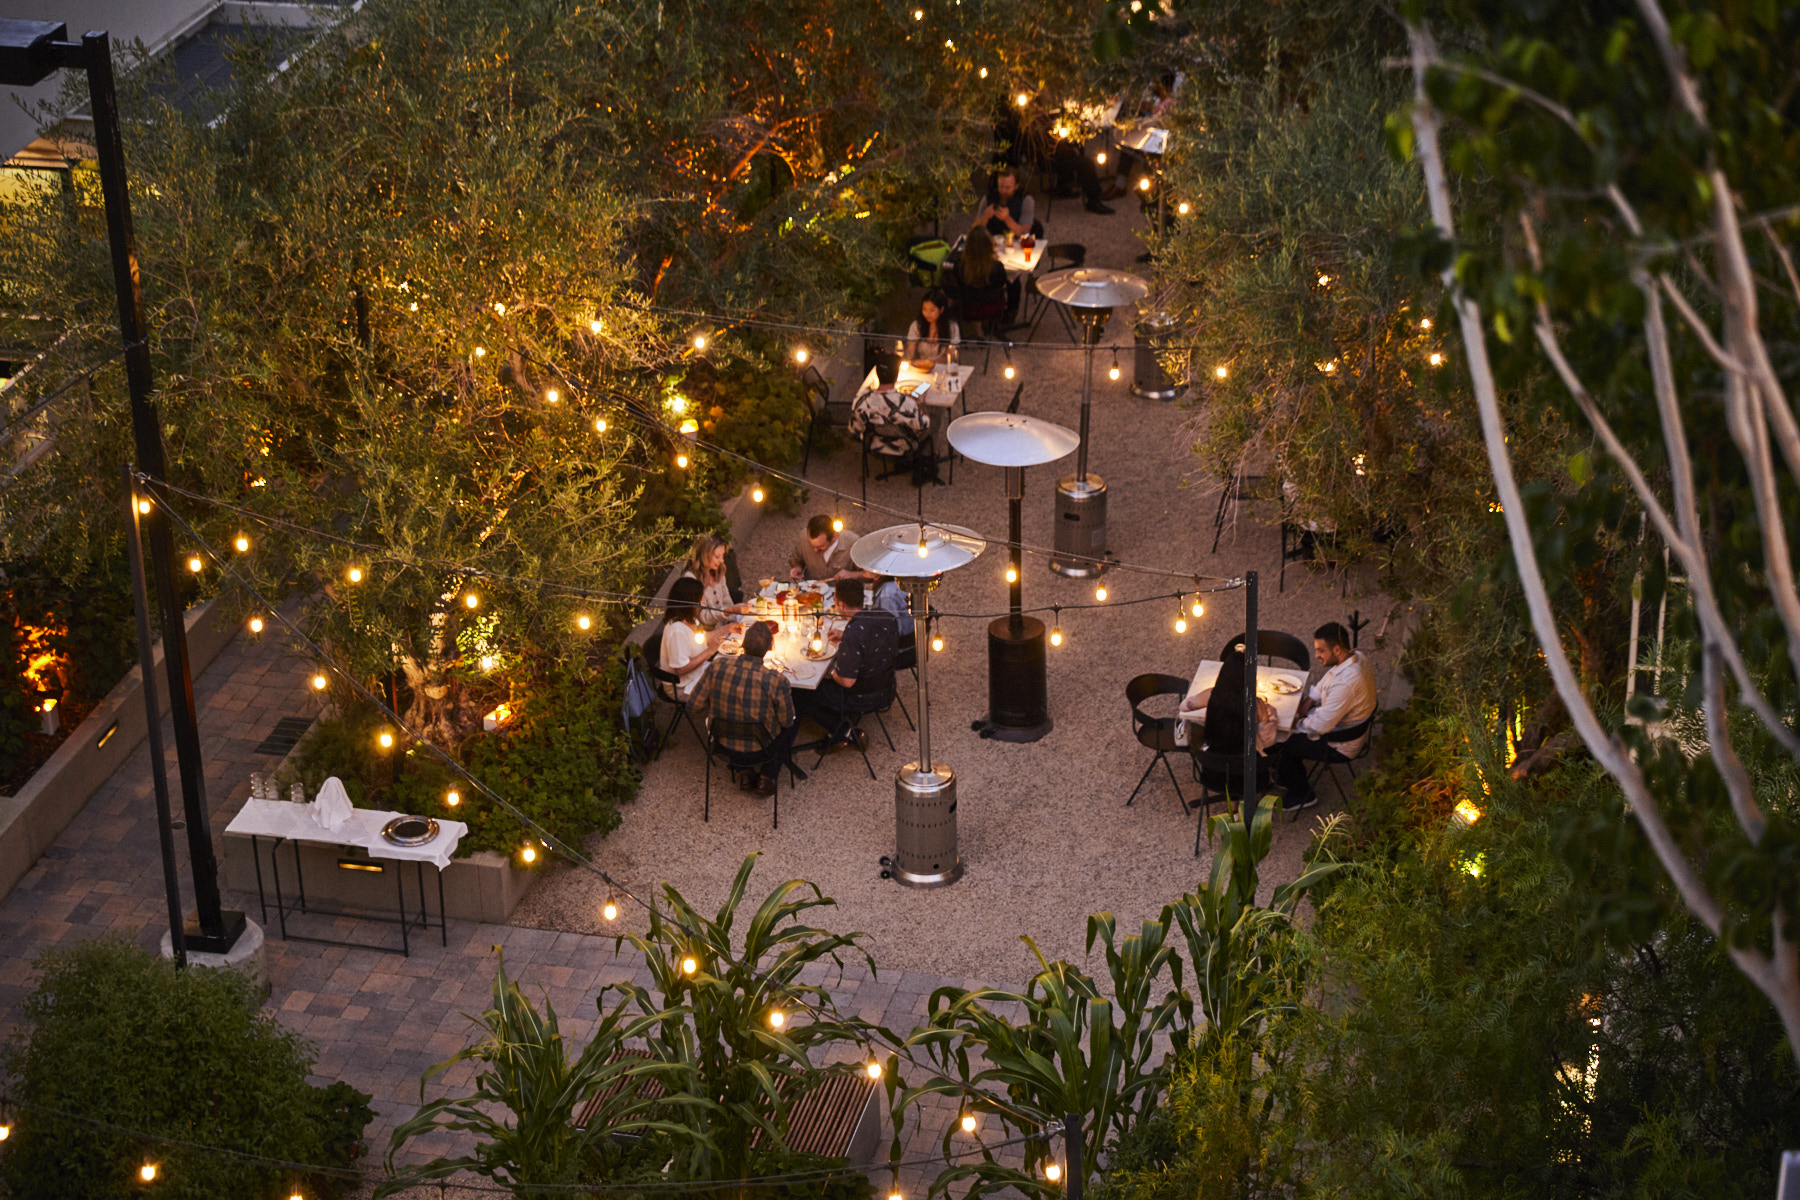 Outdoor dining at dusk with twinkle lights.